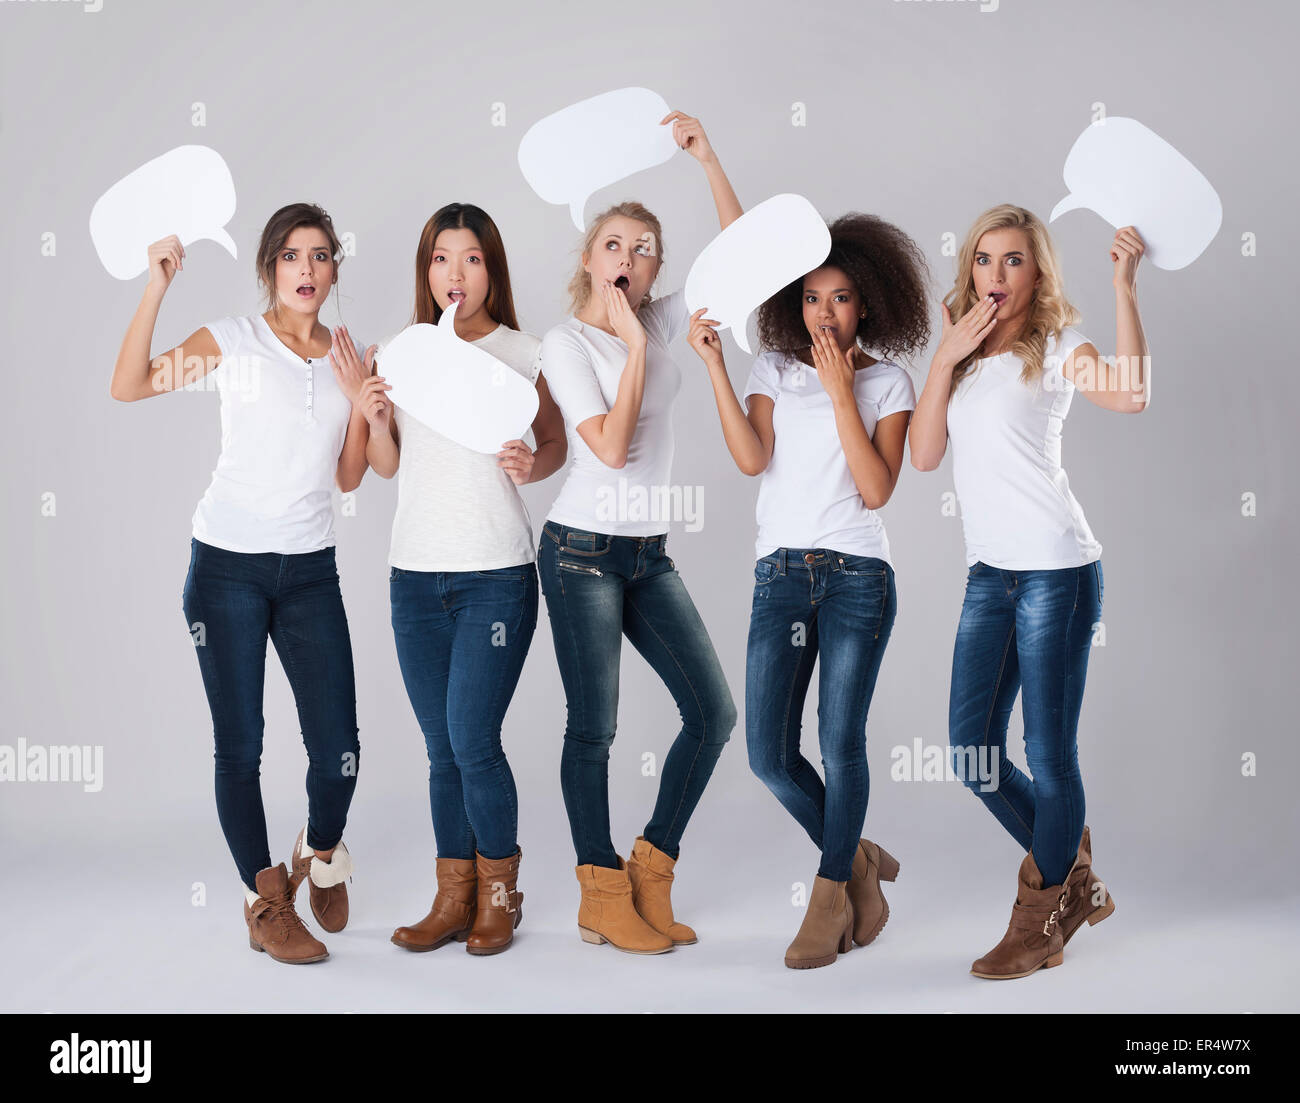 Shocked girls holding empty speech bubbles above heads. Debica, Poland - Stock Image